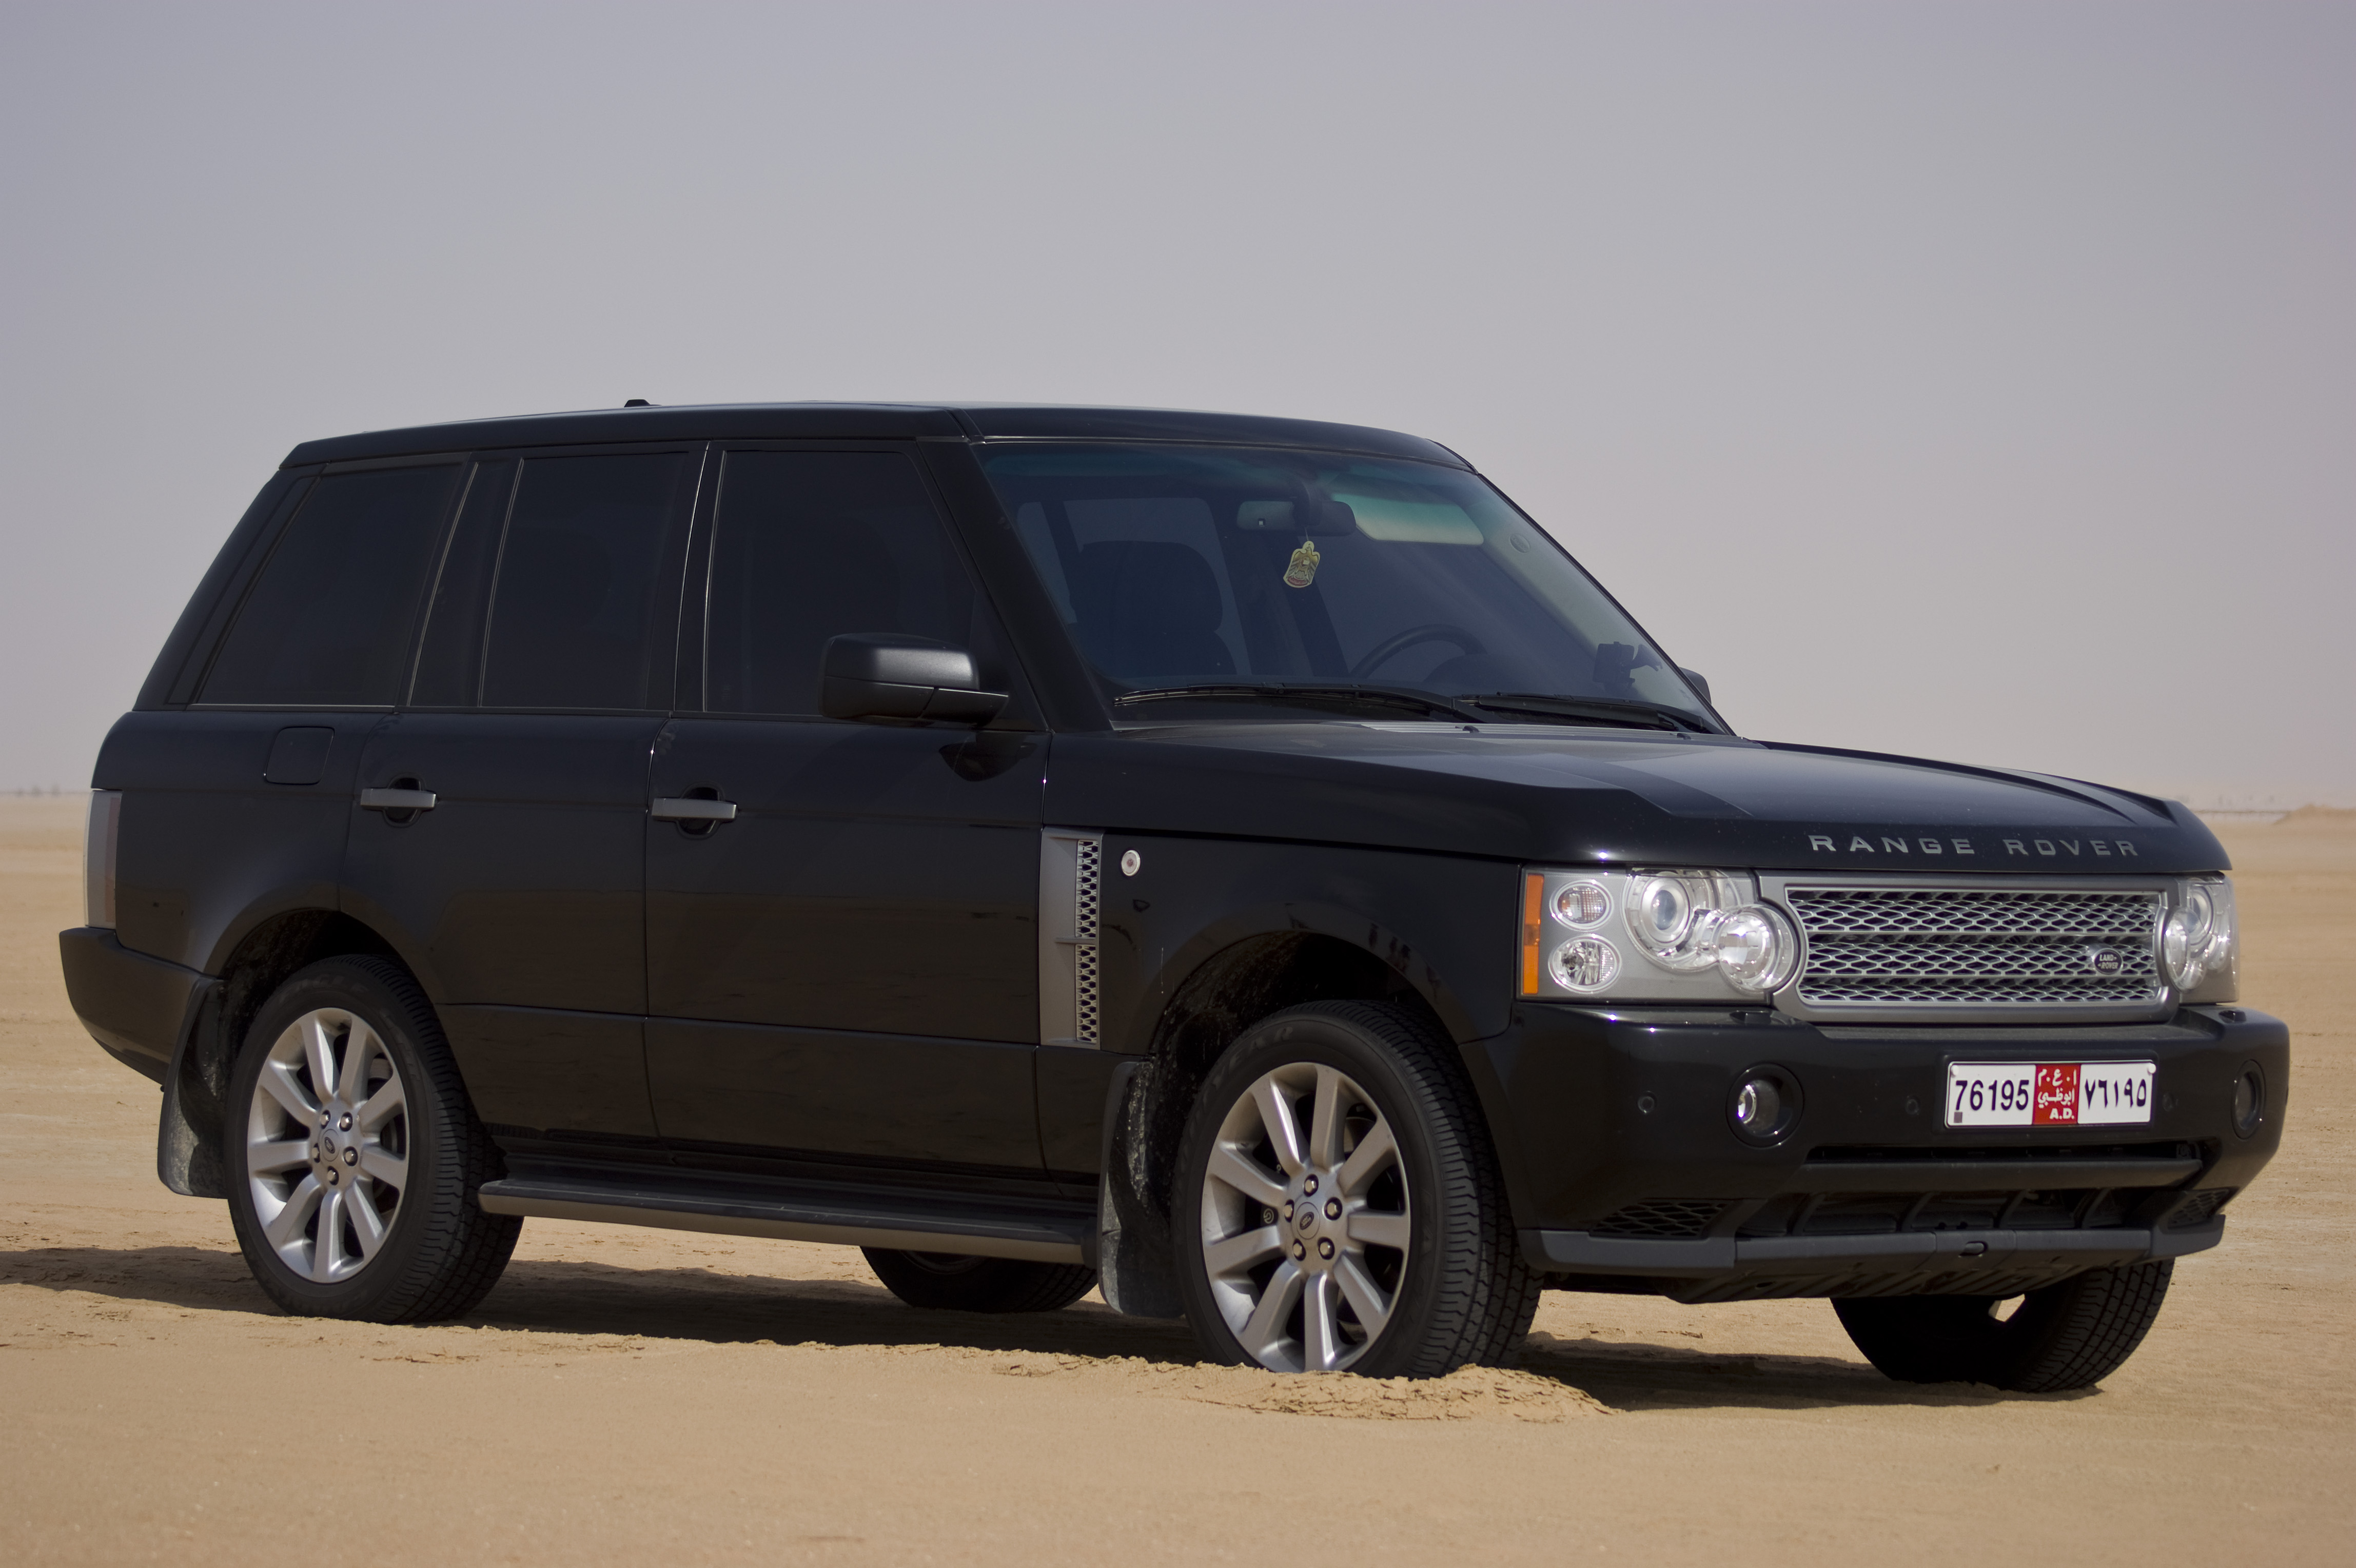 2006 land rover range rover information and photos momentcar. Black Bedroom Furniture Sets. Home Design Ideas